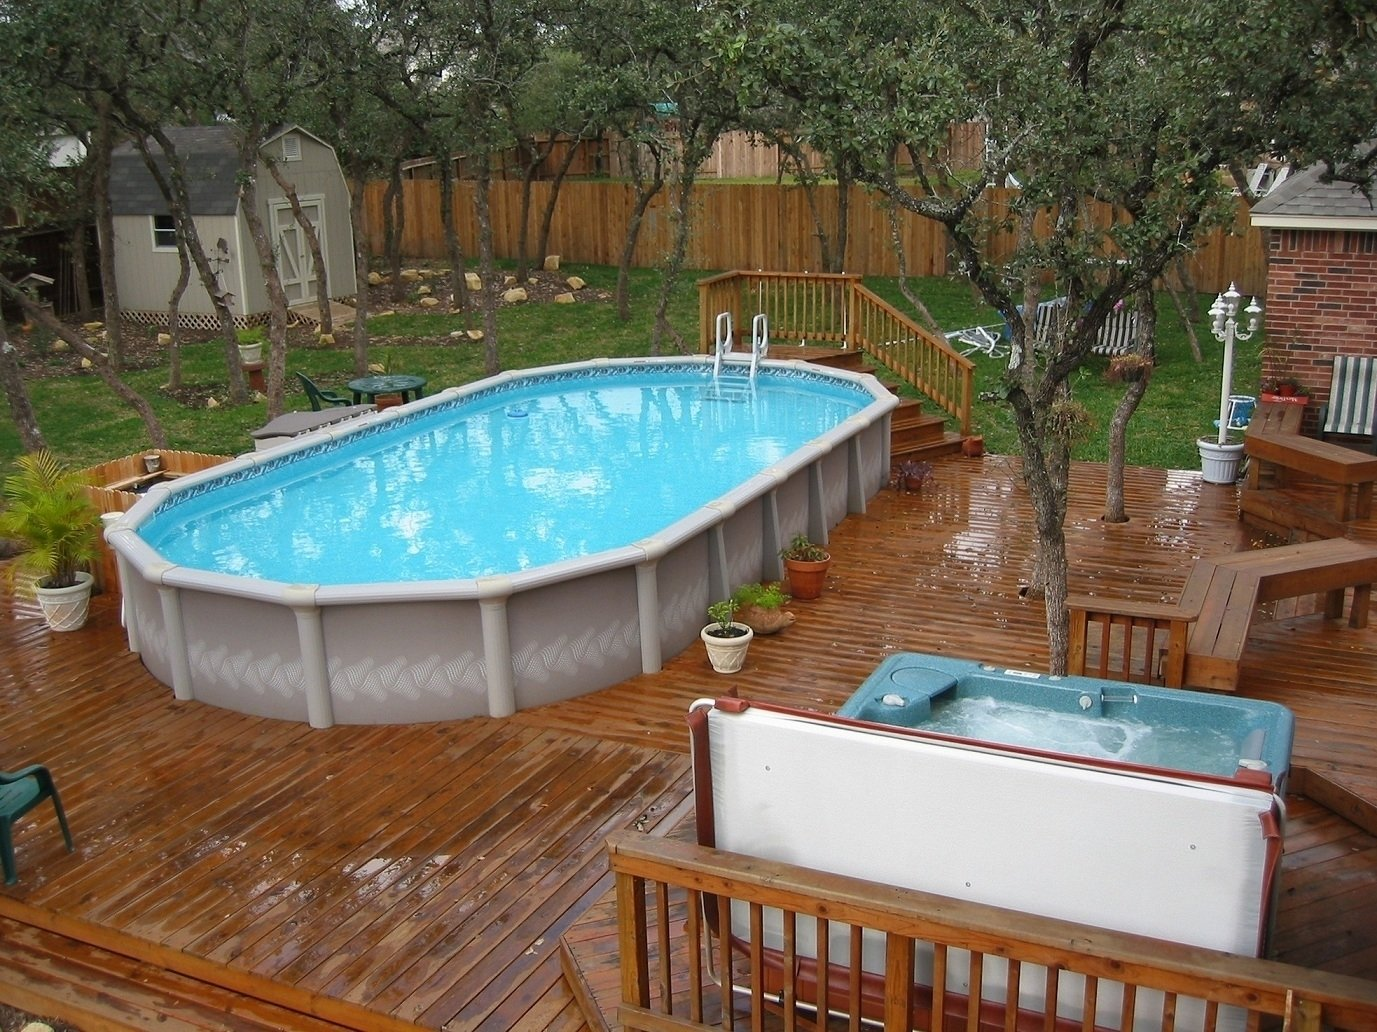 10 Most Popular Above Ground Pool Ideas Backyard backyard above ground pool ideas with in awesome dragonswatch 1